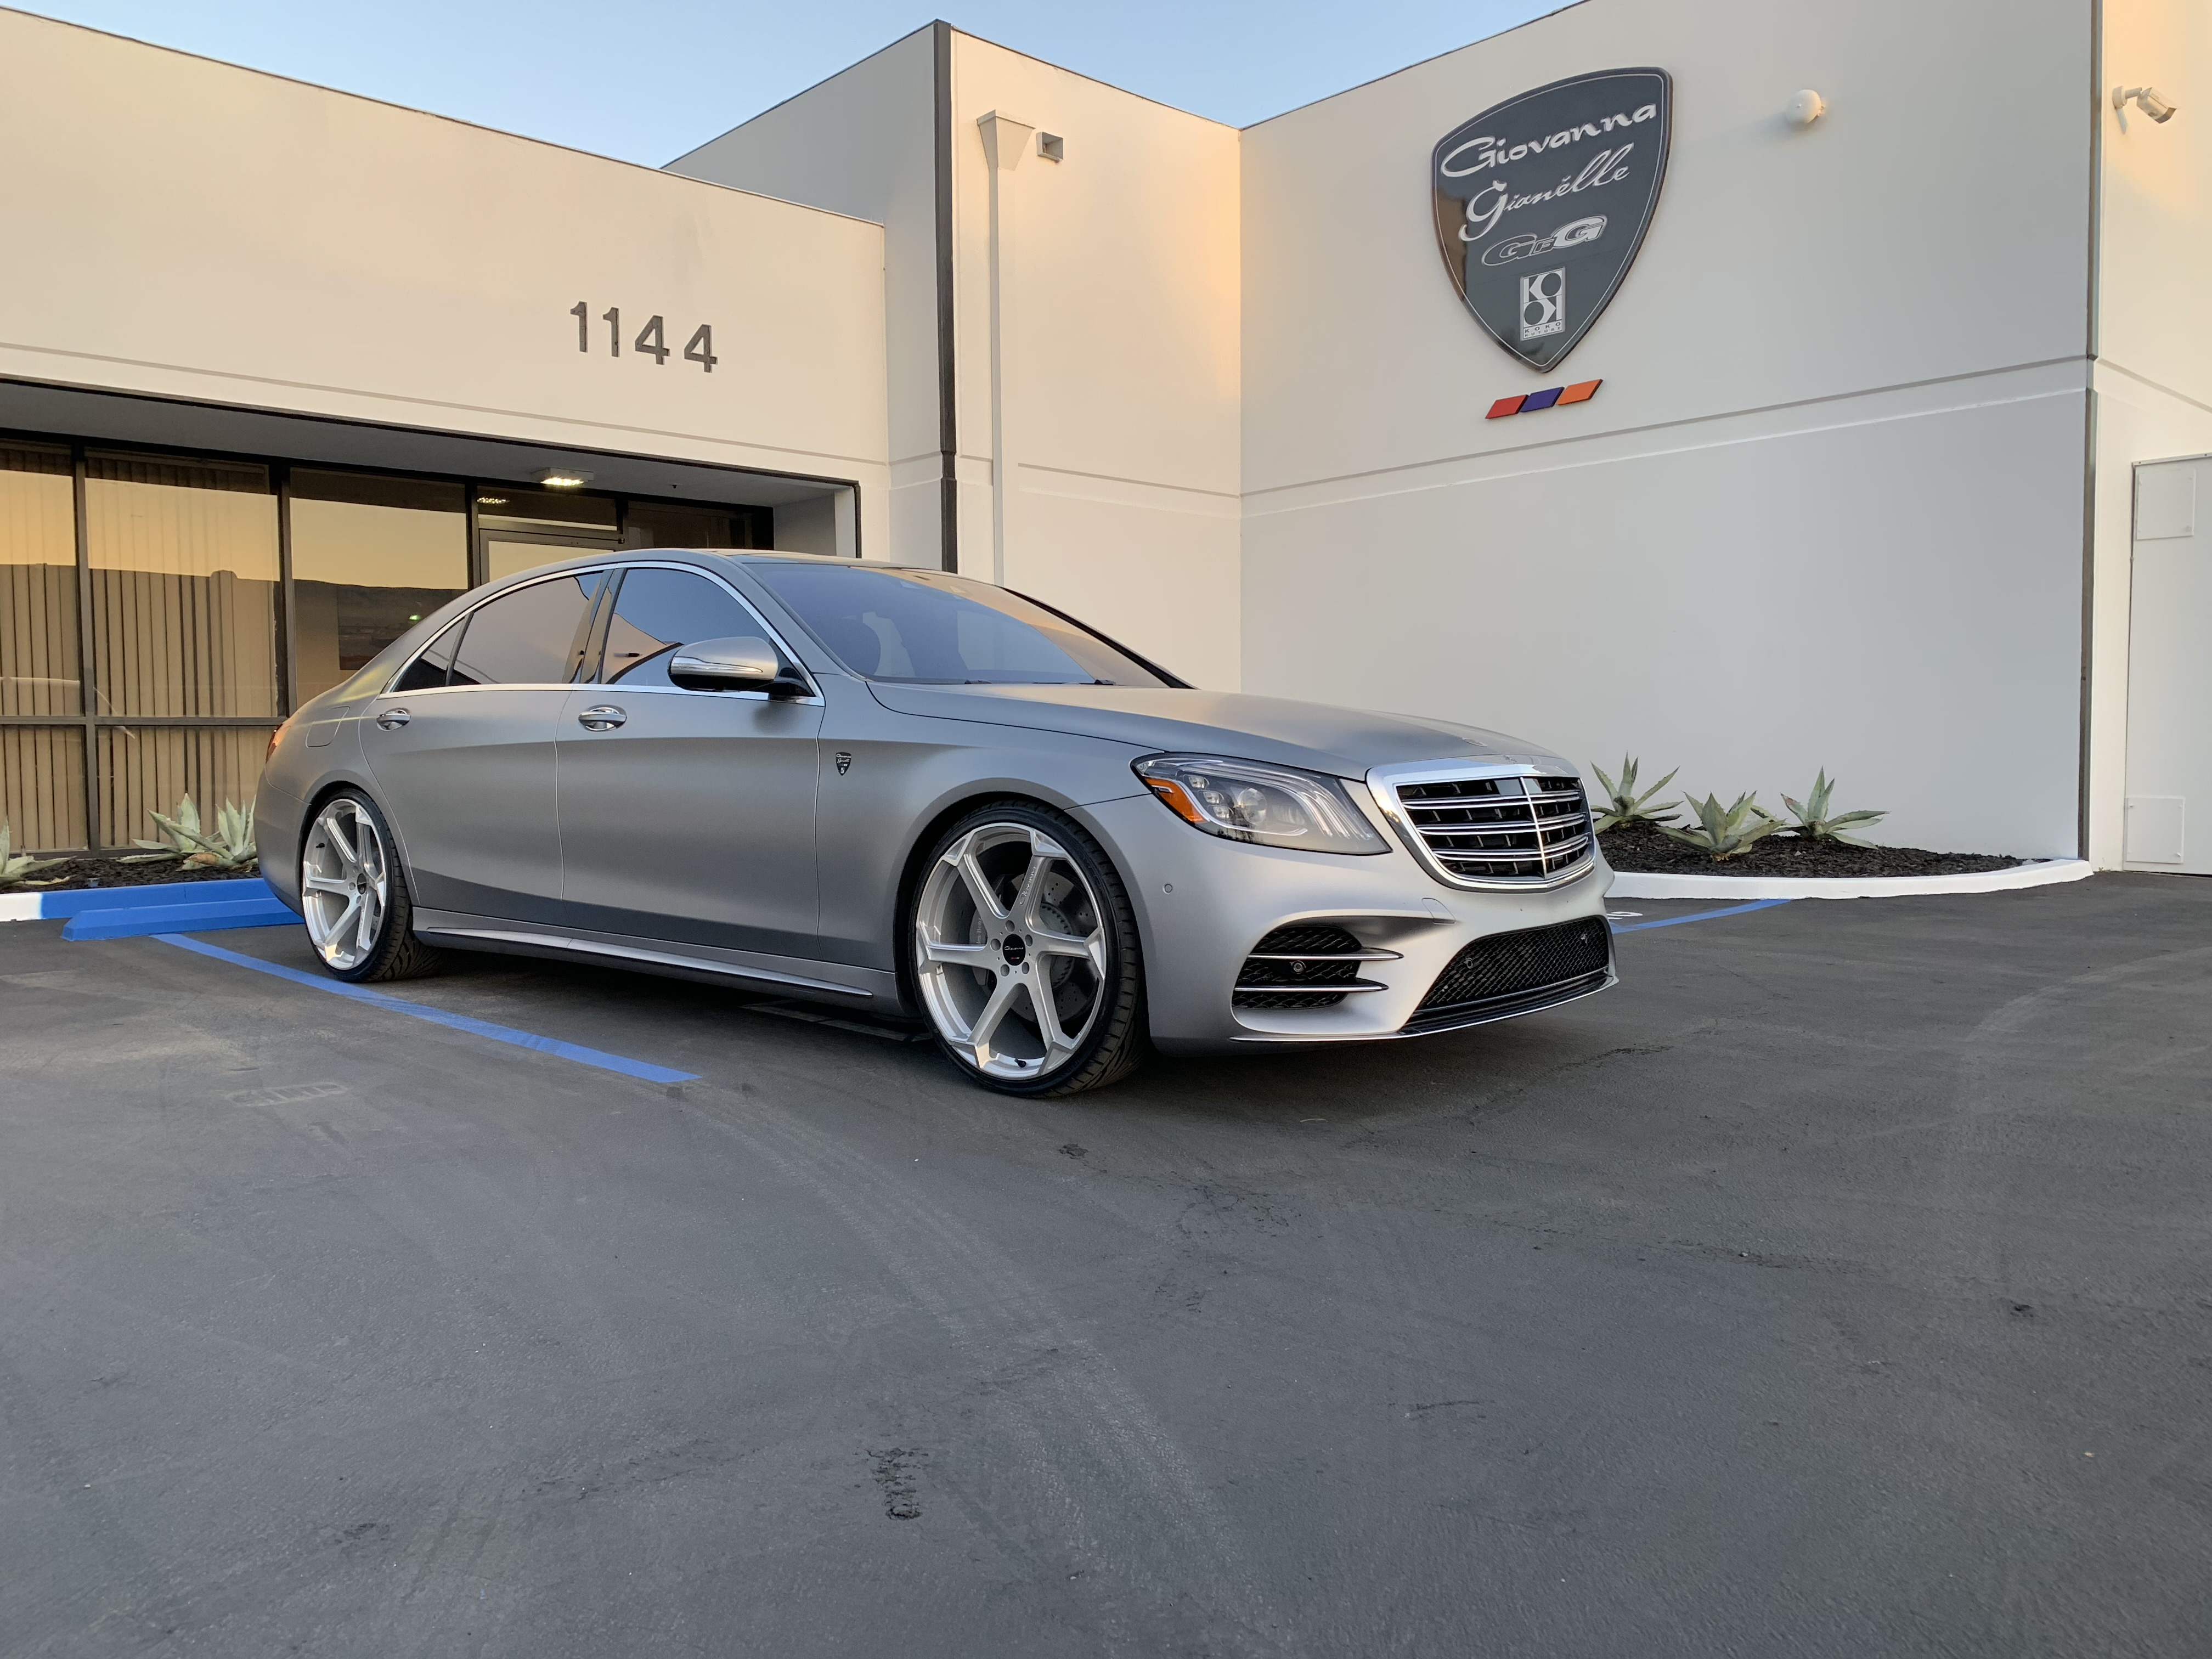 Giovanna Dalar X Silver on Mercedes Benz S Class